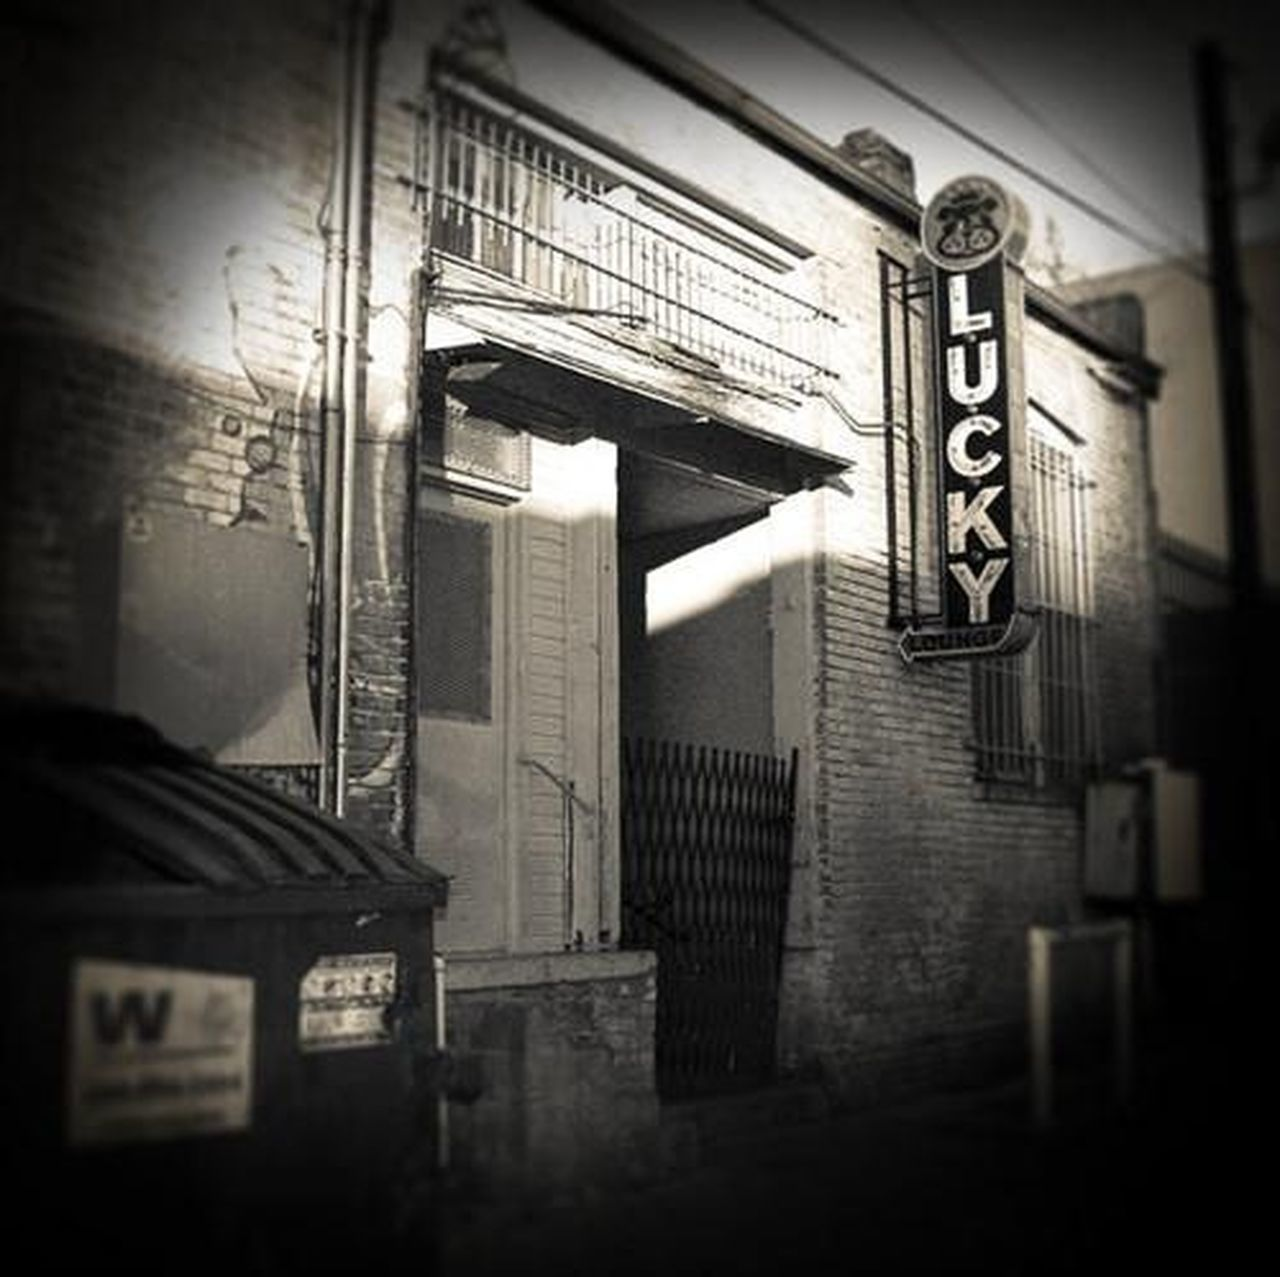 * Web use only (low resolution). Alley Alleyway Austin Bar Black And White City City Life Cityscapes Day Gritty Grungy Lucky Lounge Monotone Square Street Texas Vignette